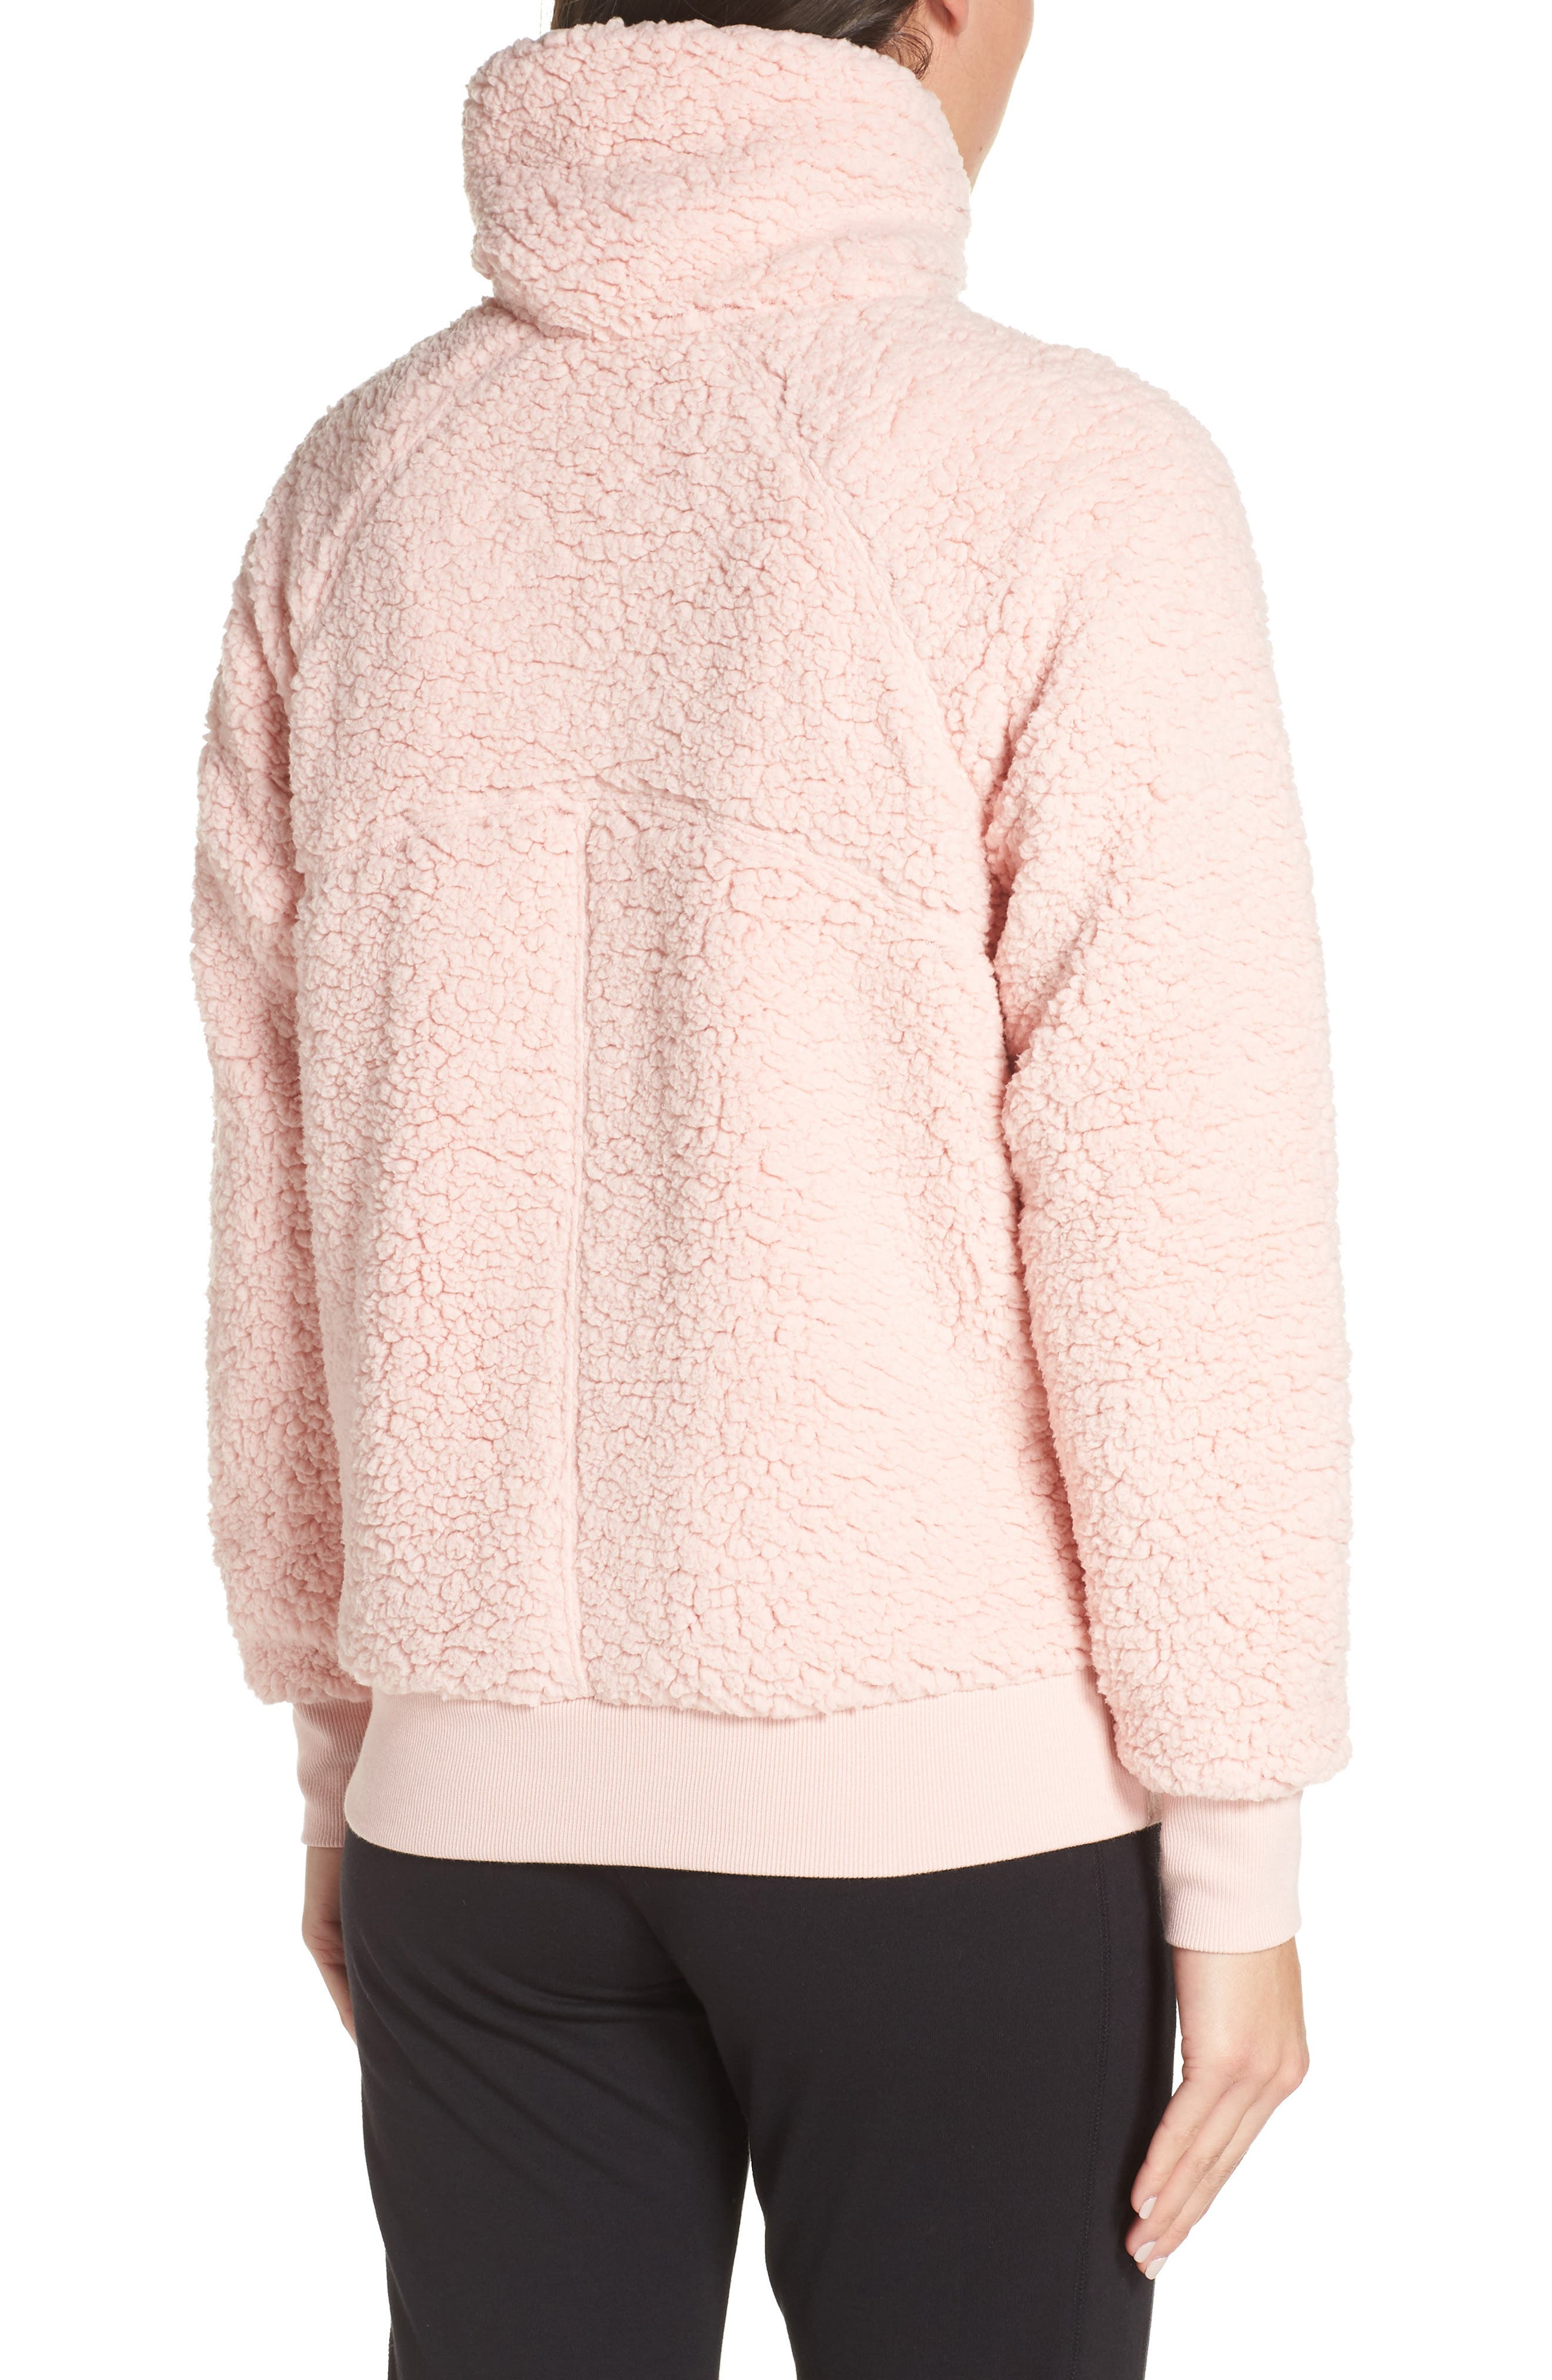 Shear Up Pullover,                             Alternate thumbnail 2, color,                             PINK PEACHSKIN